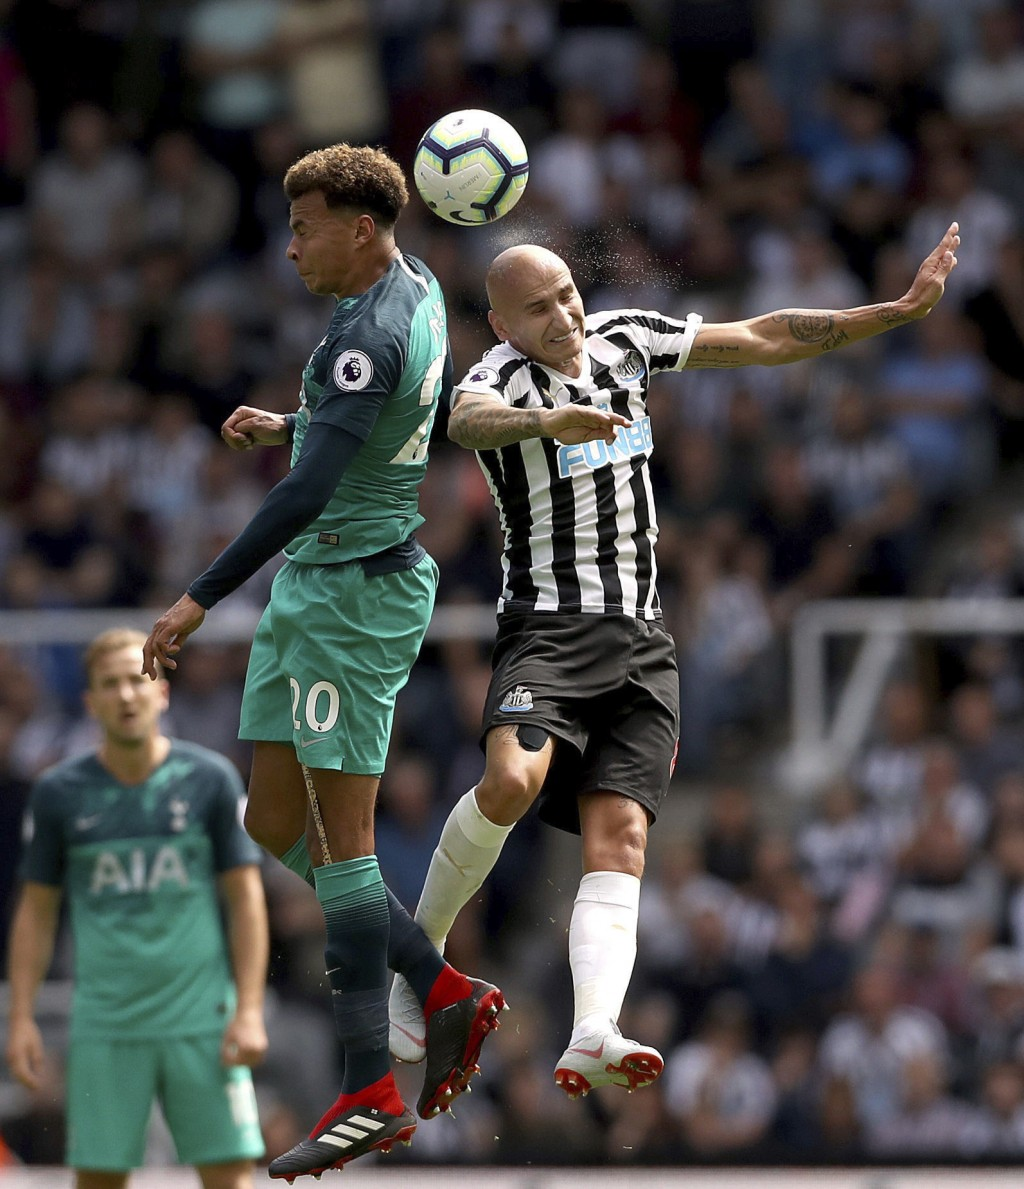 Tottenham Hotspur's Dele Alli, left, and Newcastle United's Jonjo Shelvey contest for a header during their English Premier League soccer match at St